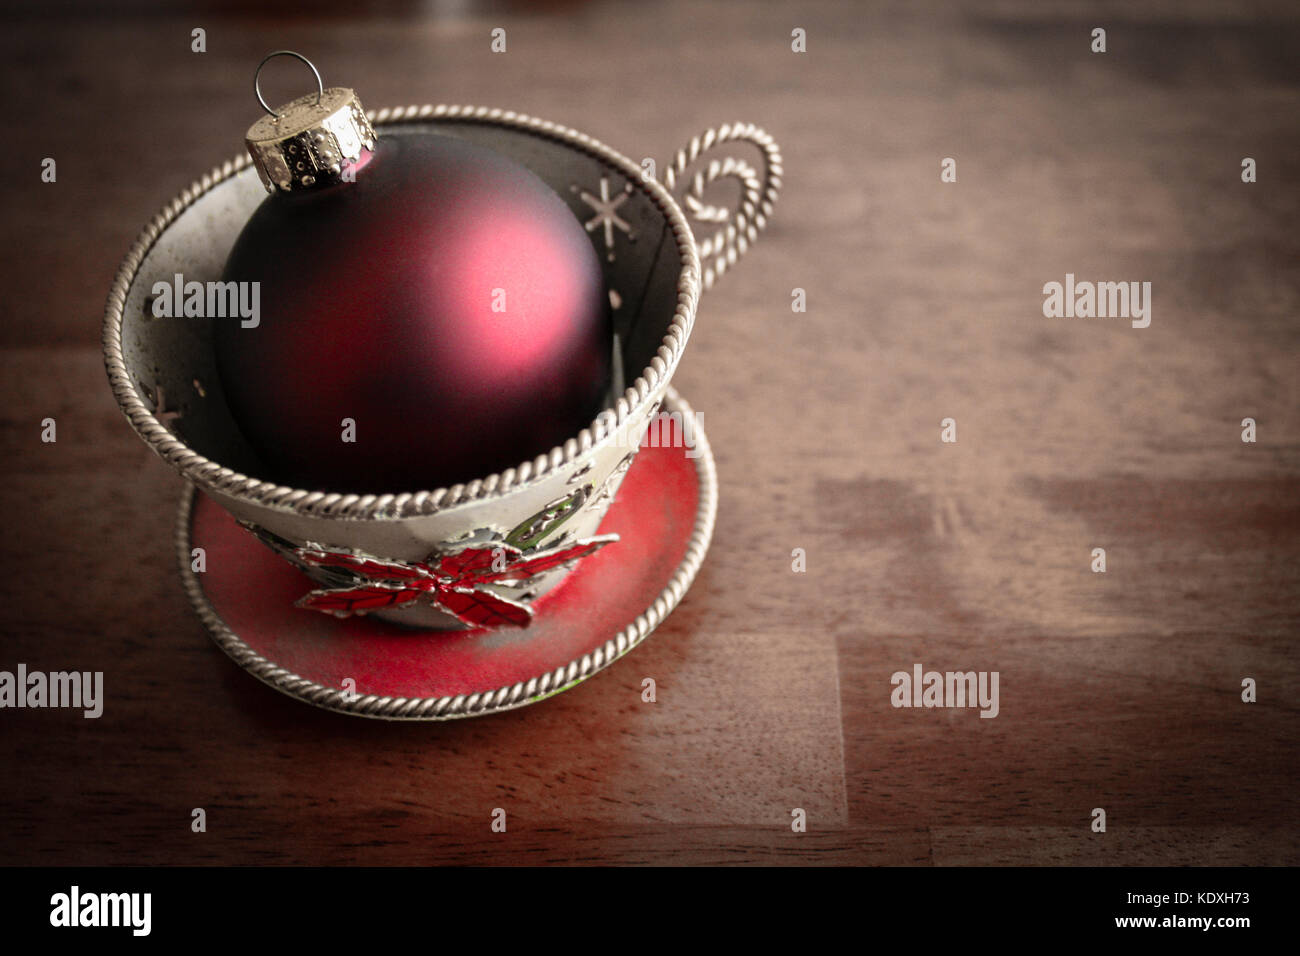 Image of a cup of cheer - Stock Image